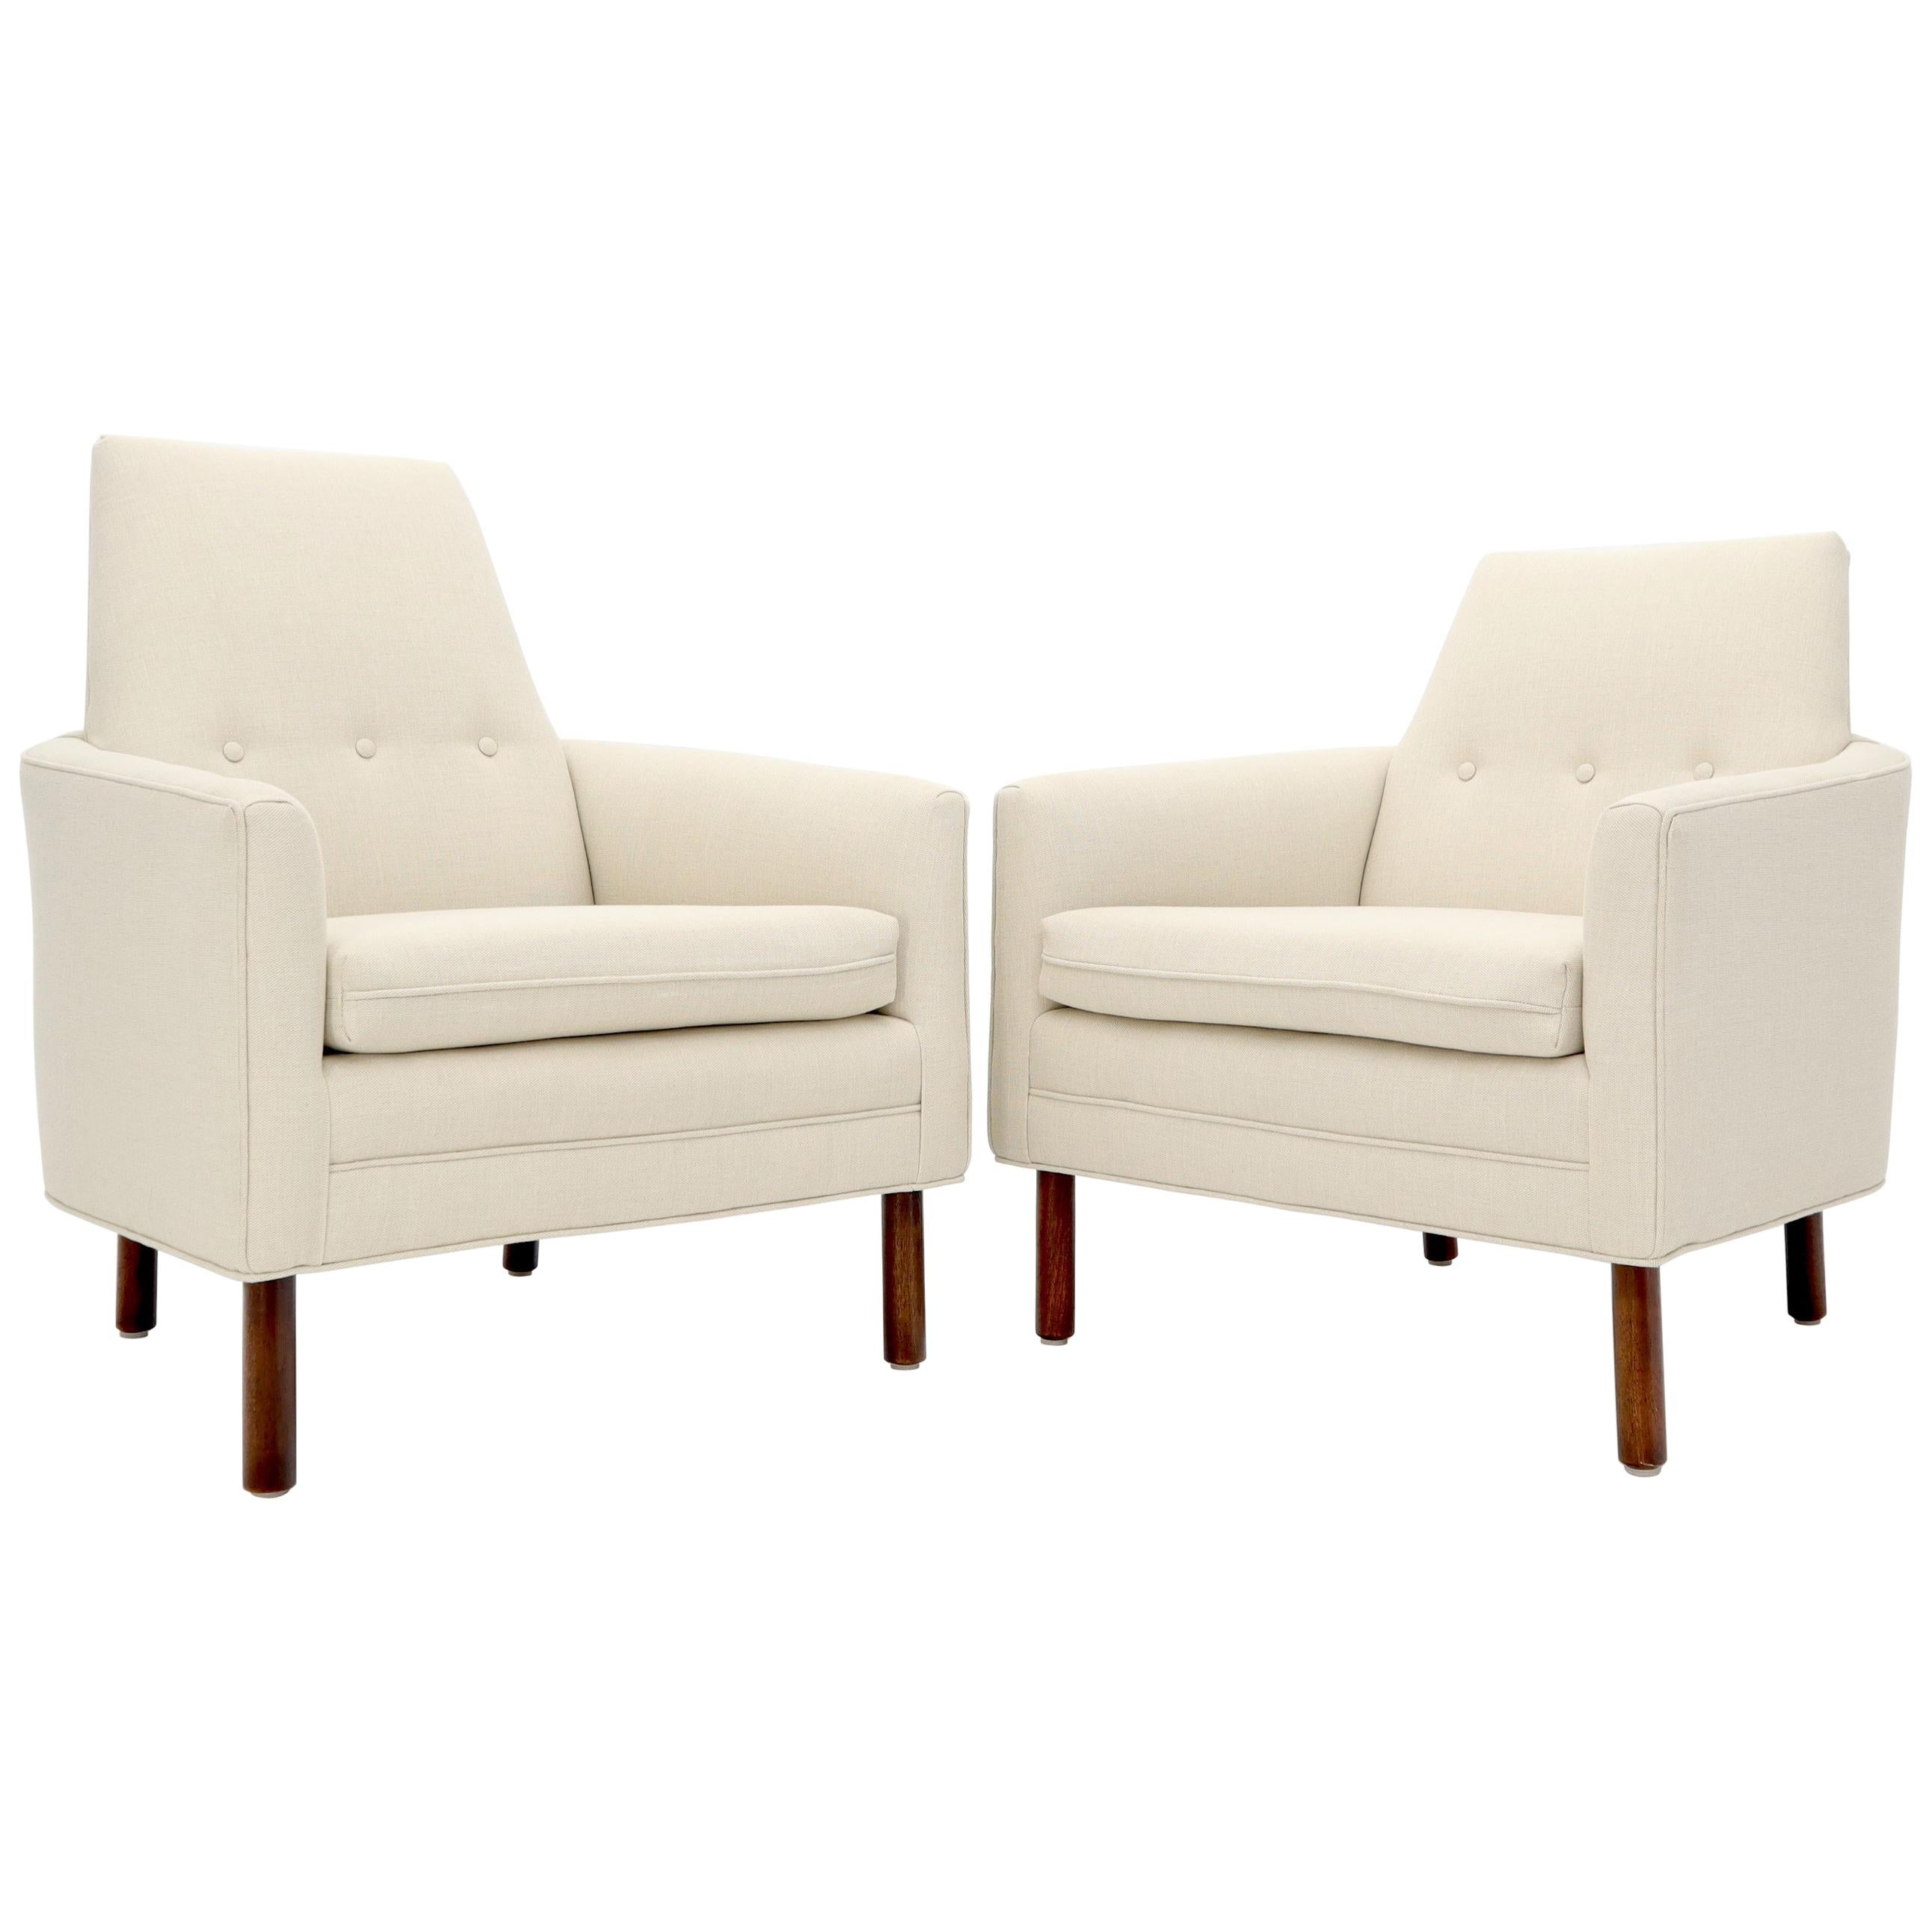 Pair of His & Hers Probber Style Lounge Chairs New Linen Upholstery